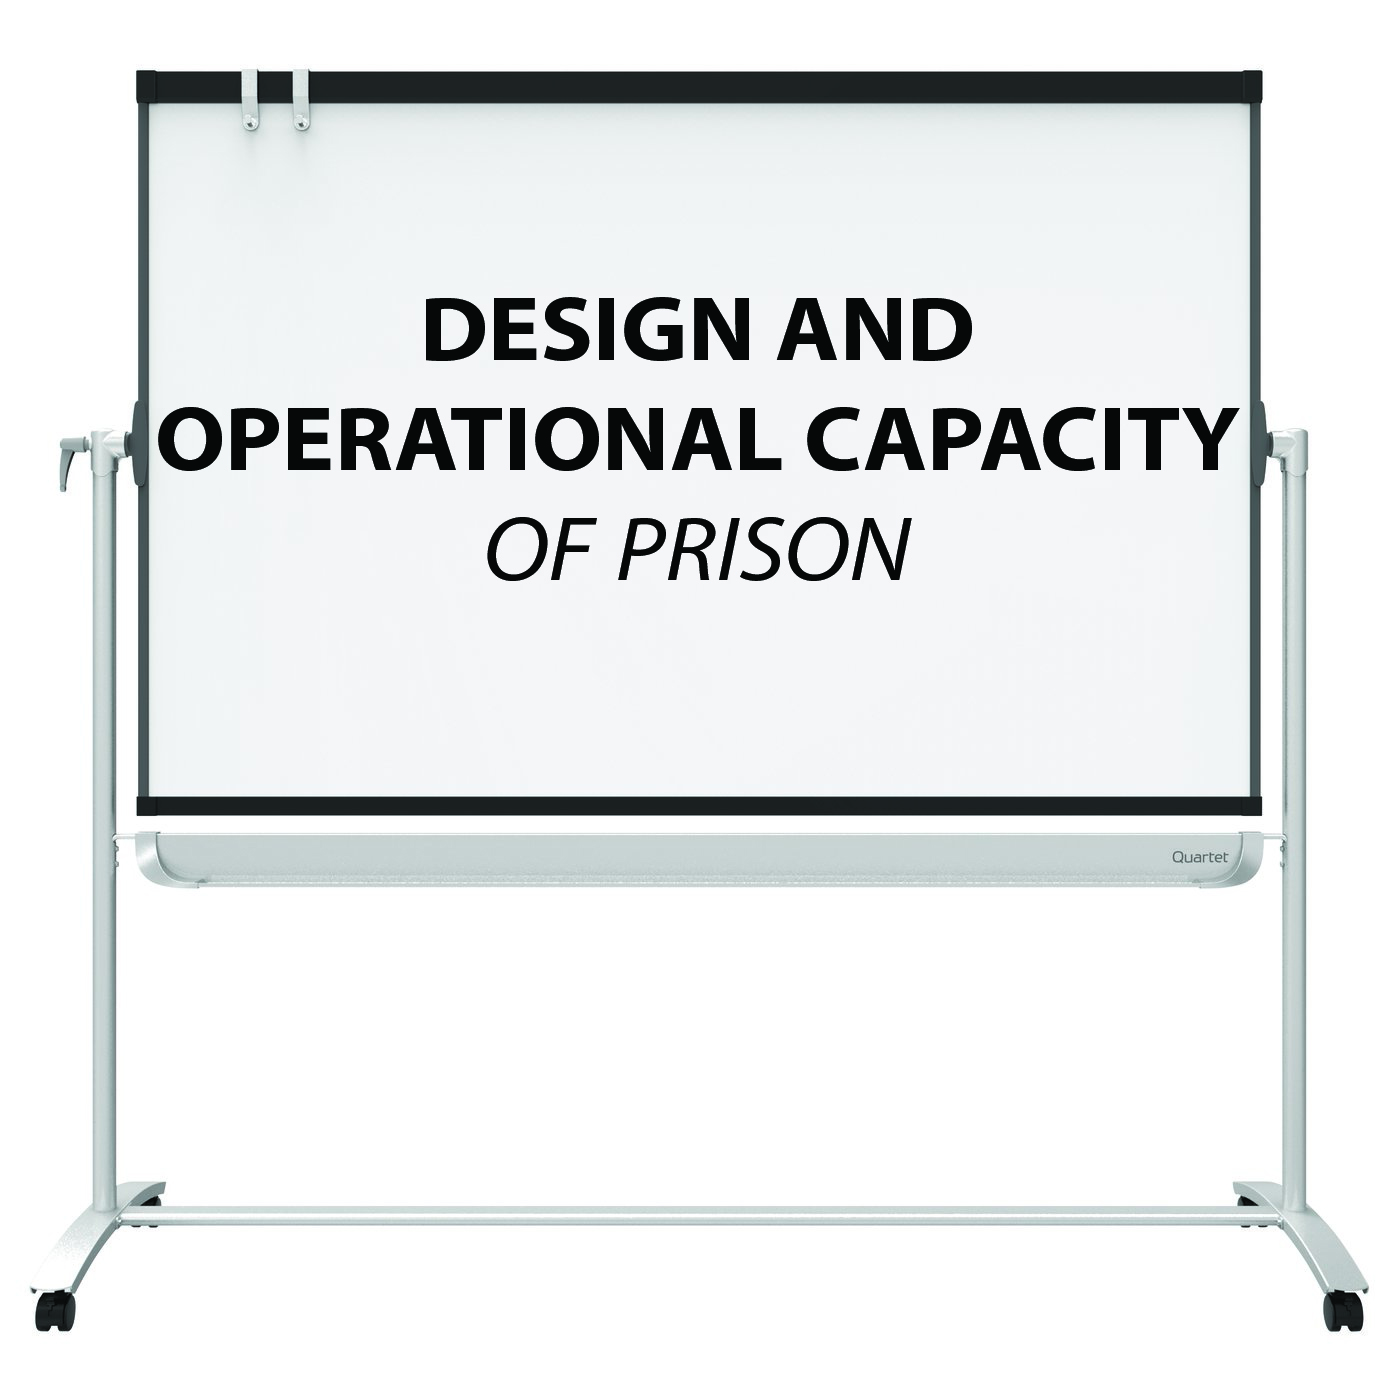 Design and Operational Capacity